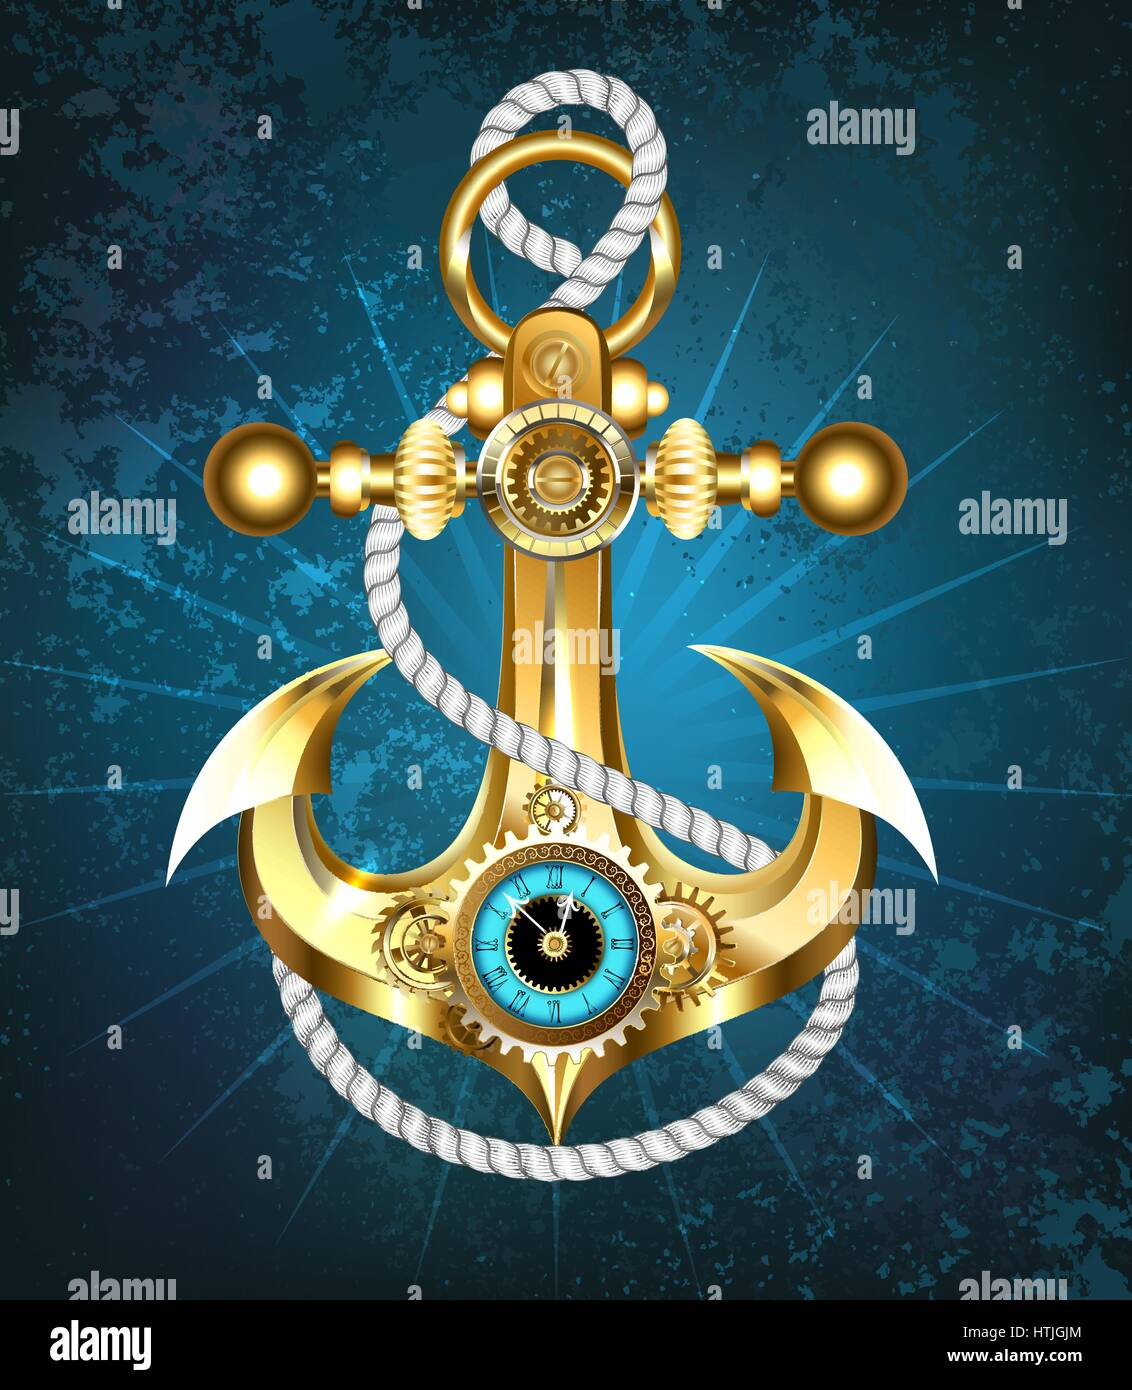 Gold Anchor With A White Rope And Clock On Turquoise Background Steampunk